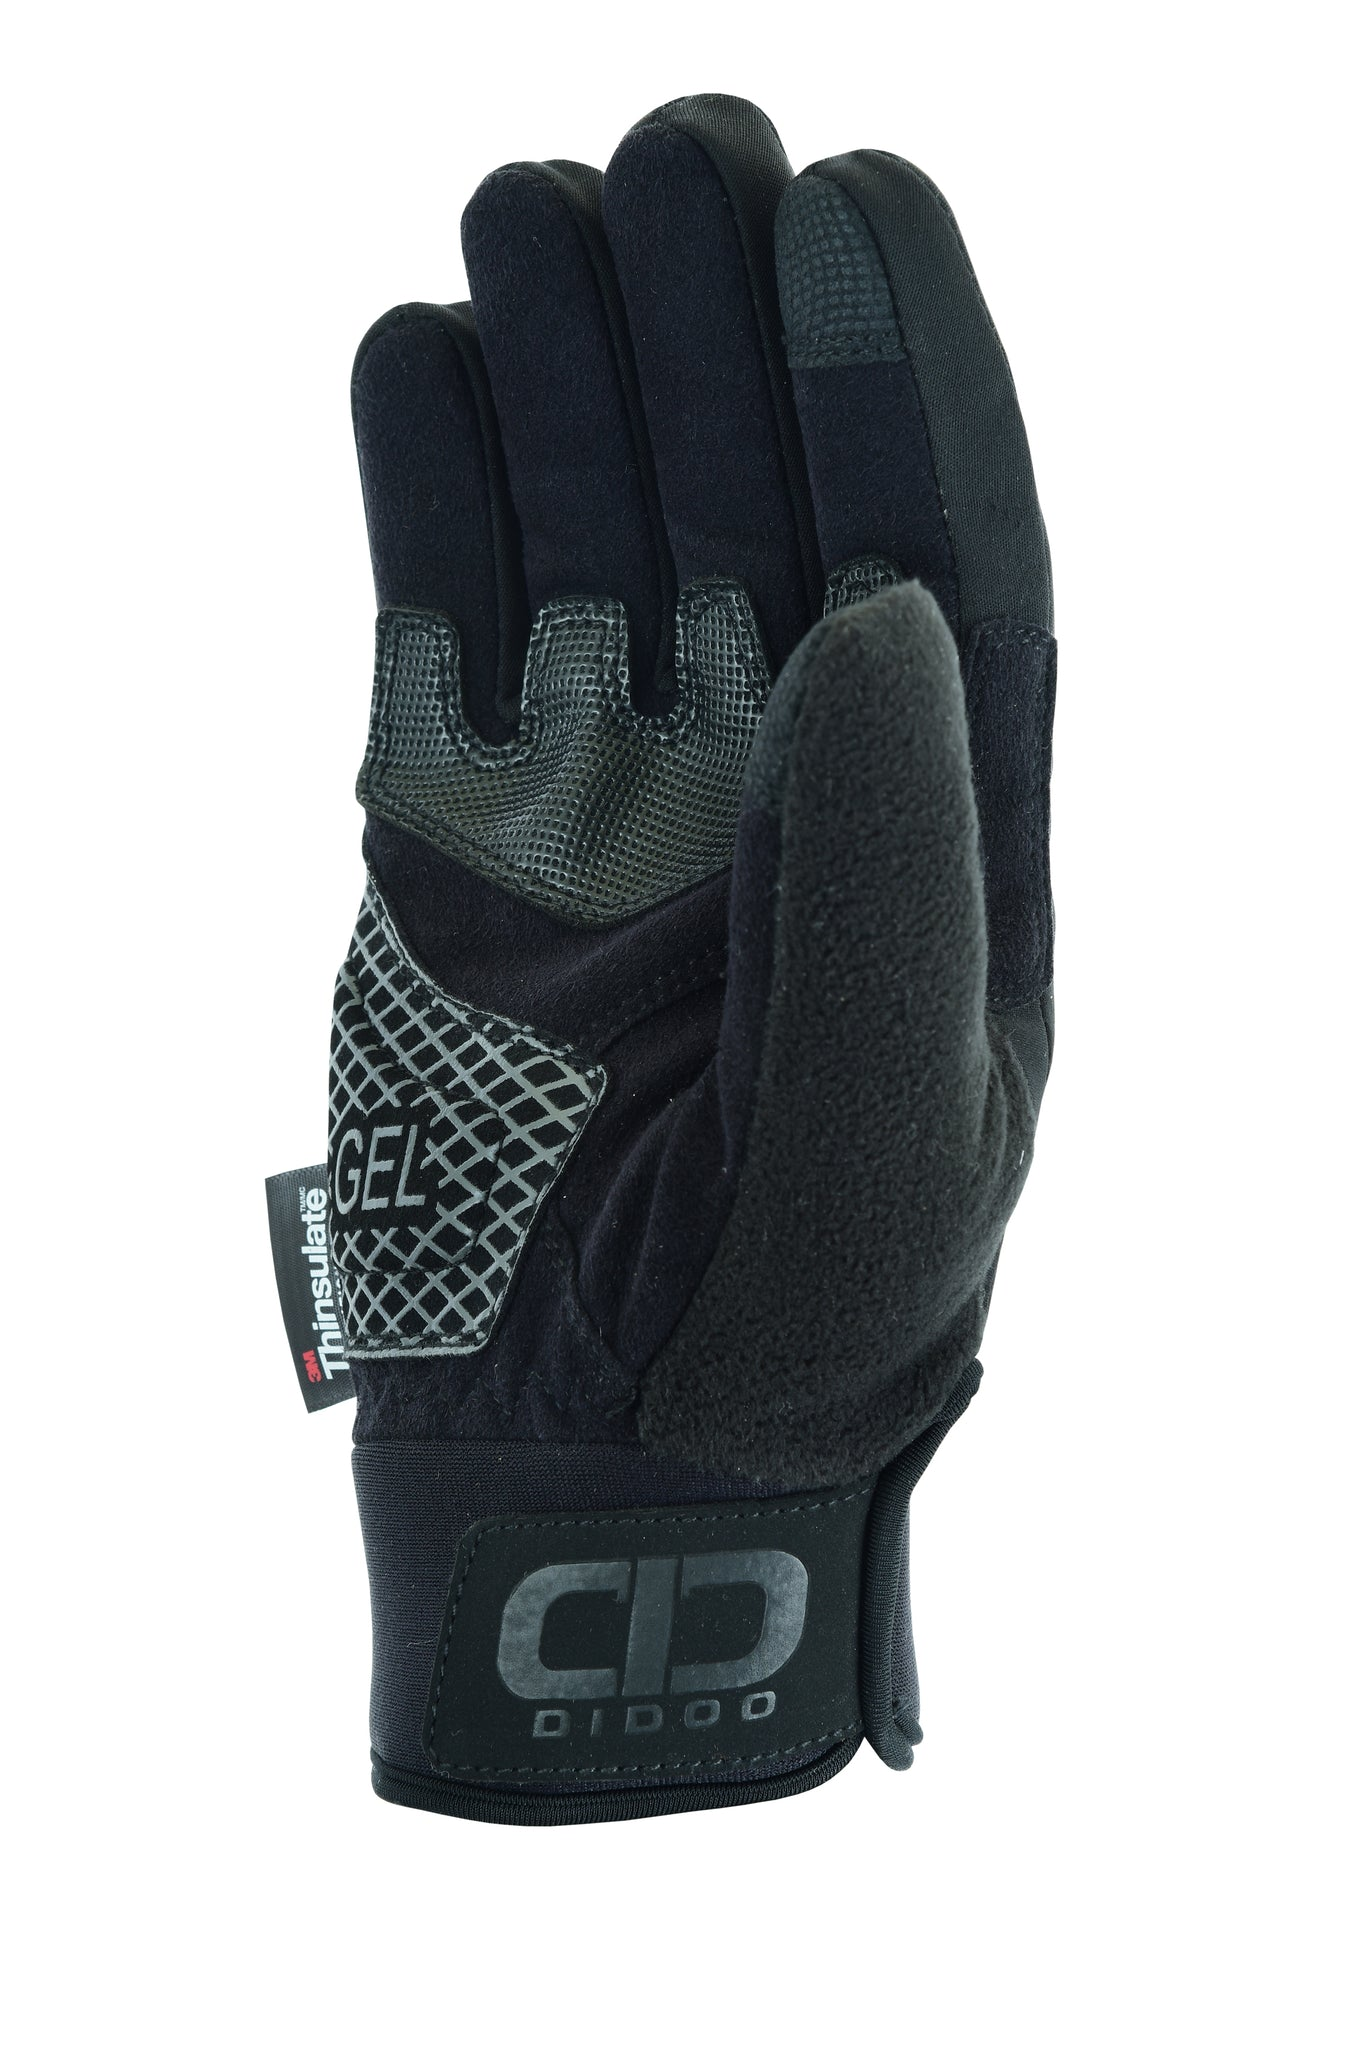 Men's Pro Waterproof & Wind Resistant Winter Cycling Gloves Black